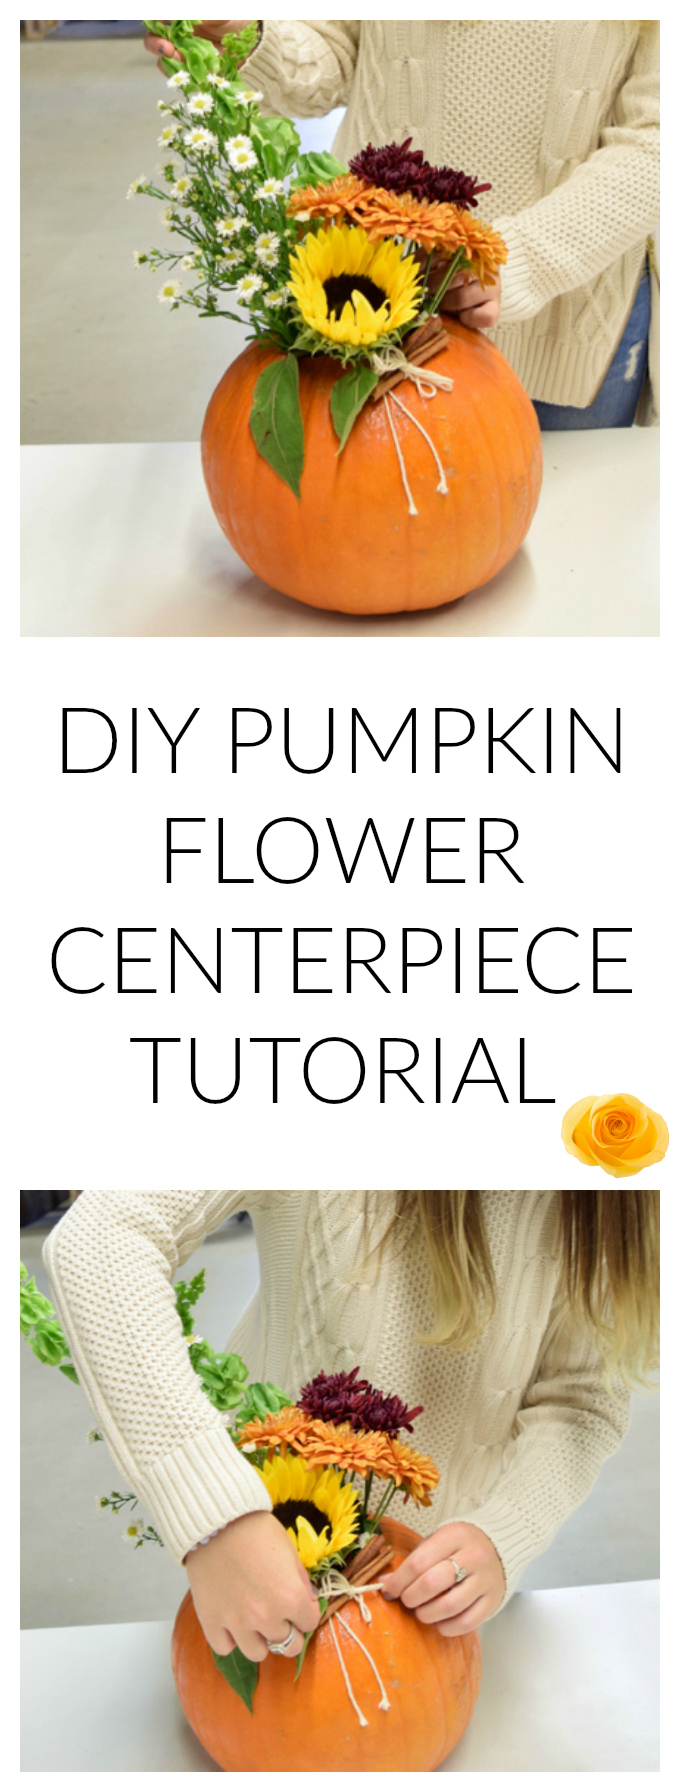 DIY PUMPKIN FLOWER CENTERPIECE TUTORIAL